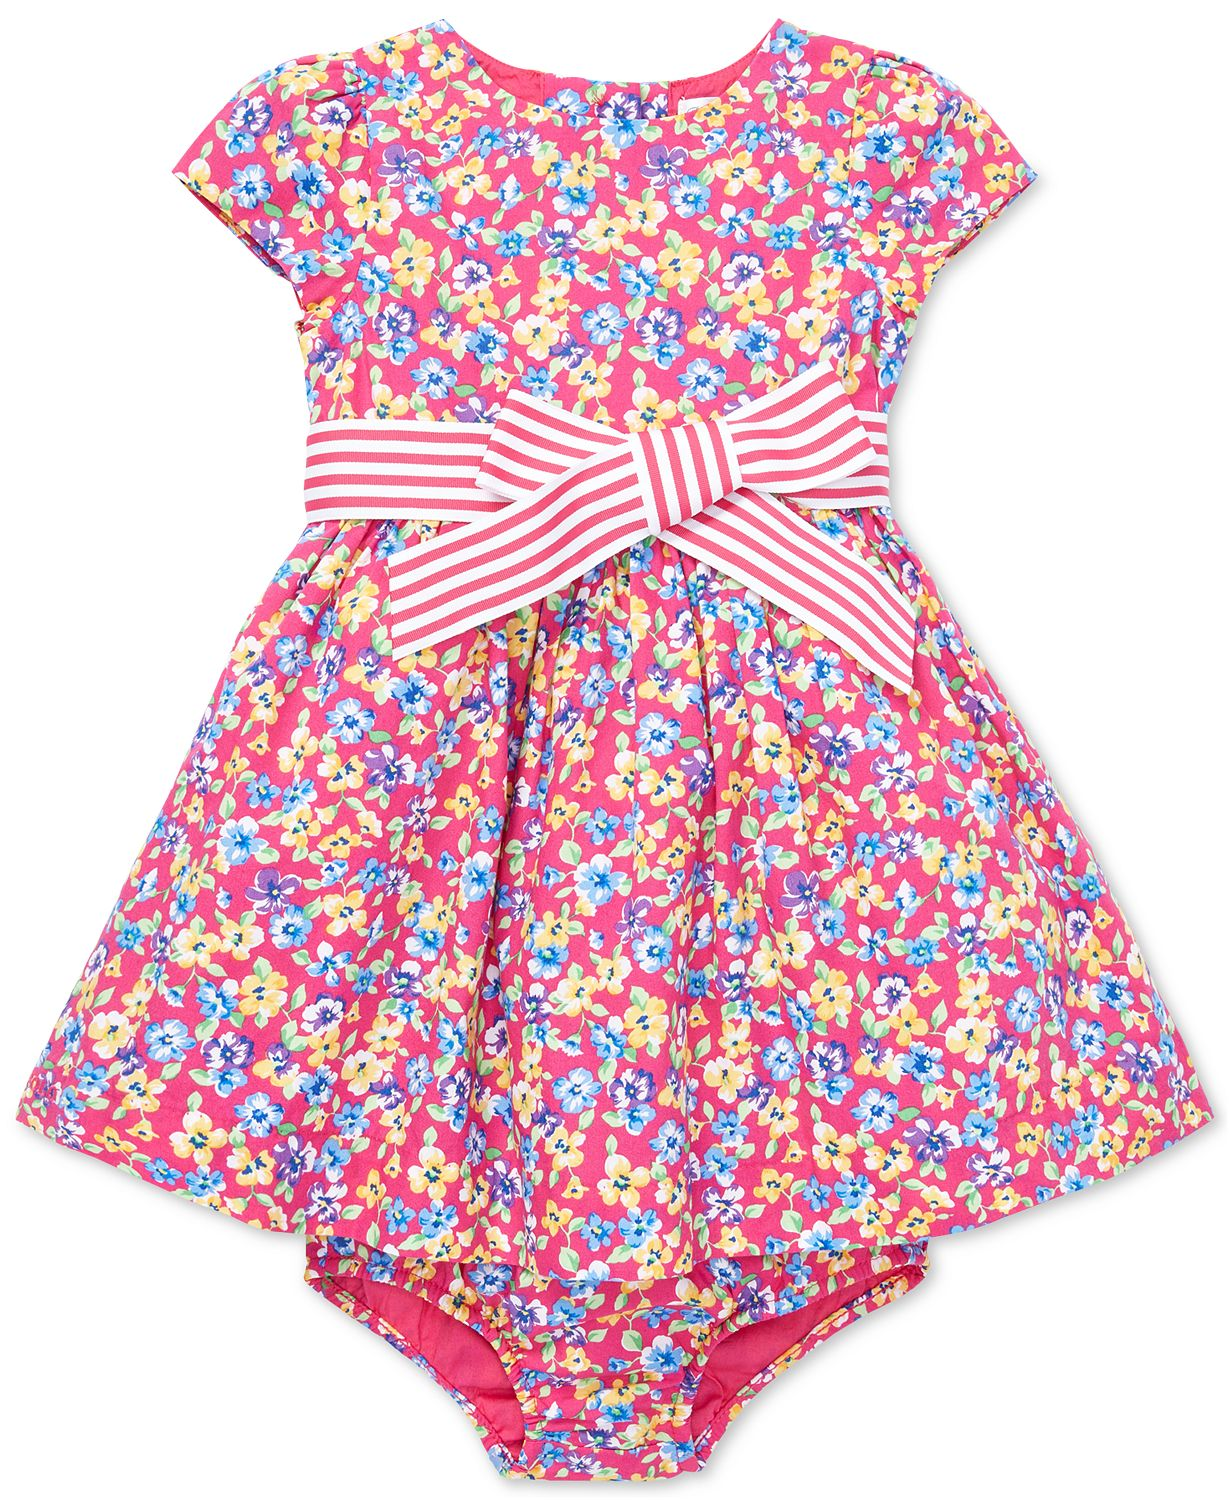 7dd33b89a2fe This infant Easter dress for a baby girl has an allover floral print that  is beautiful